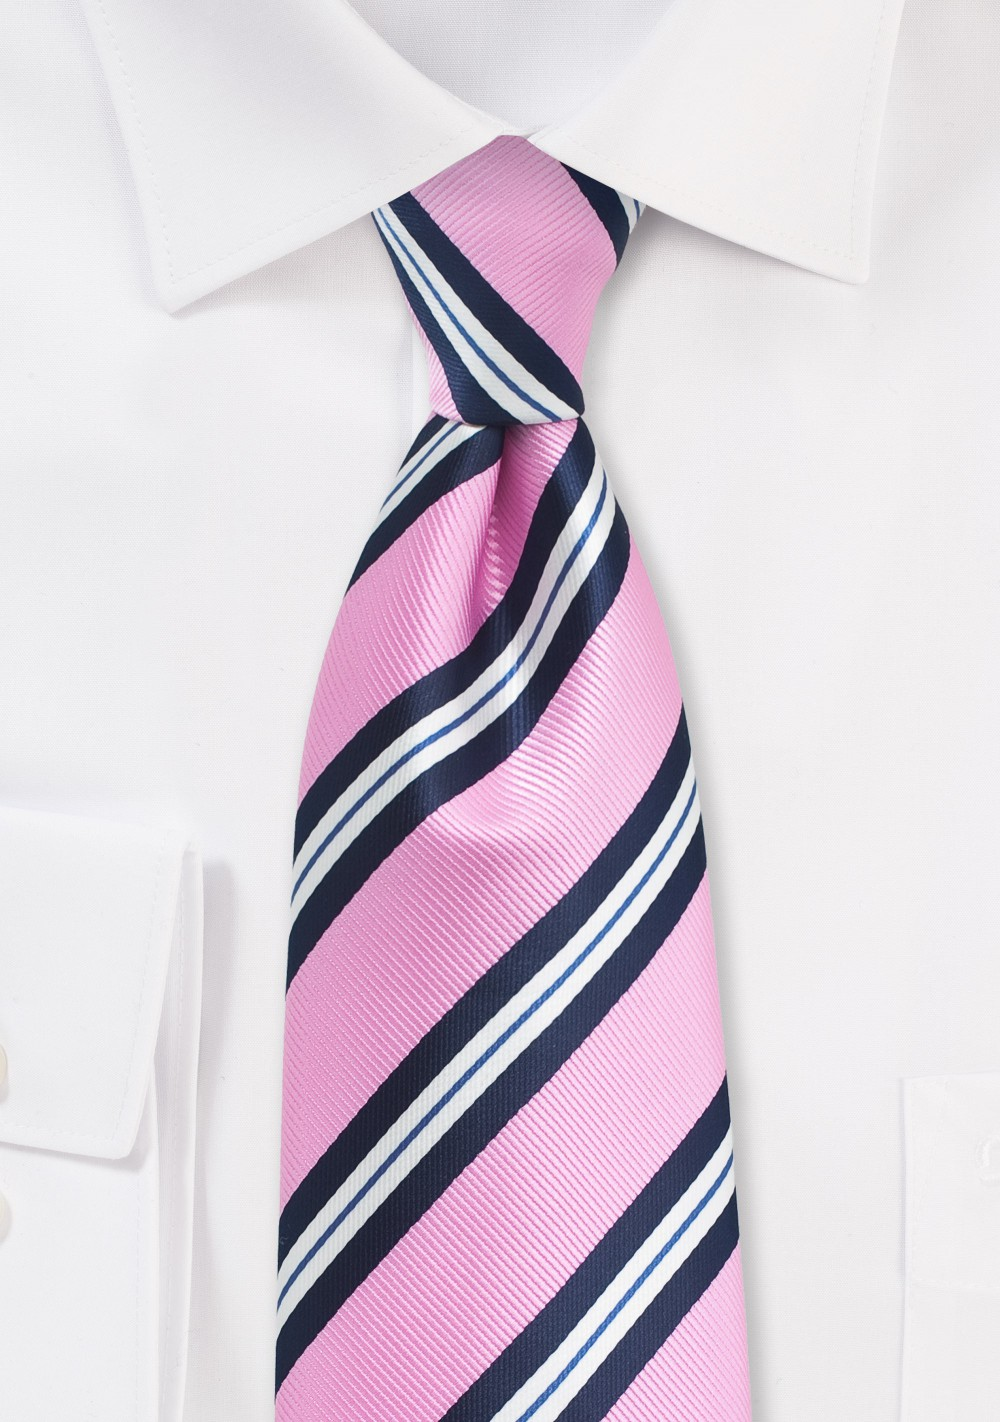 Bright Pink, Blue, and White Striped Tie